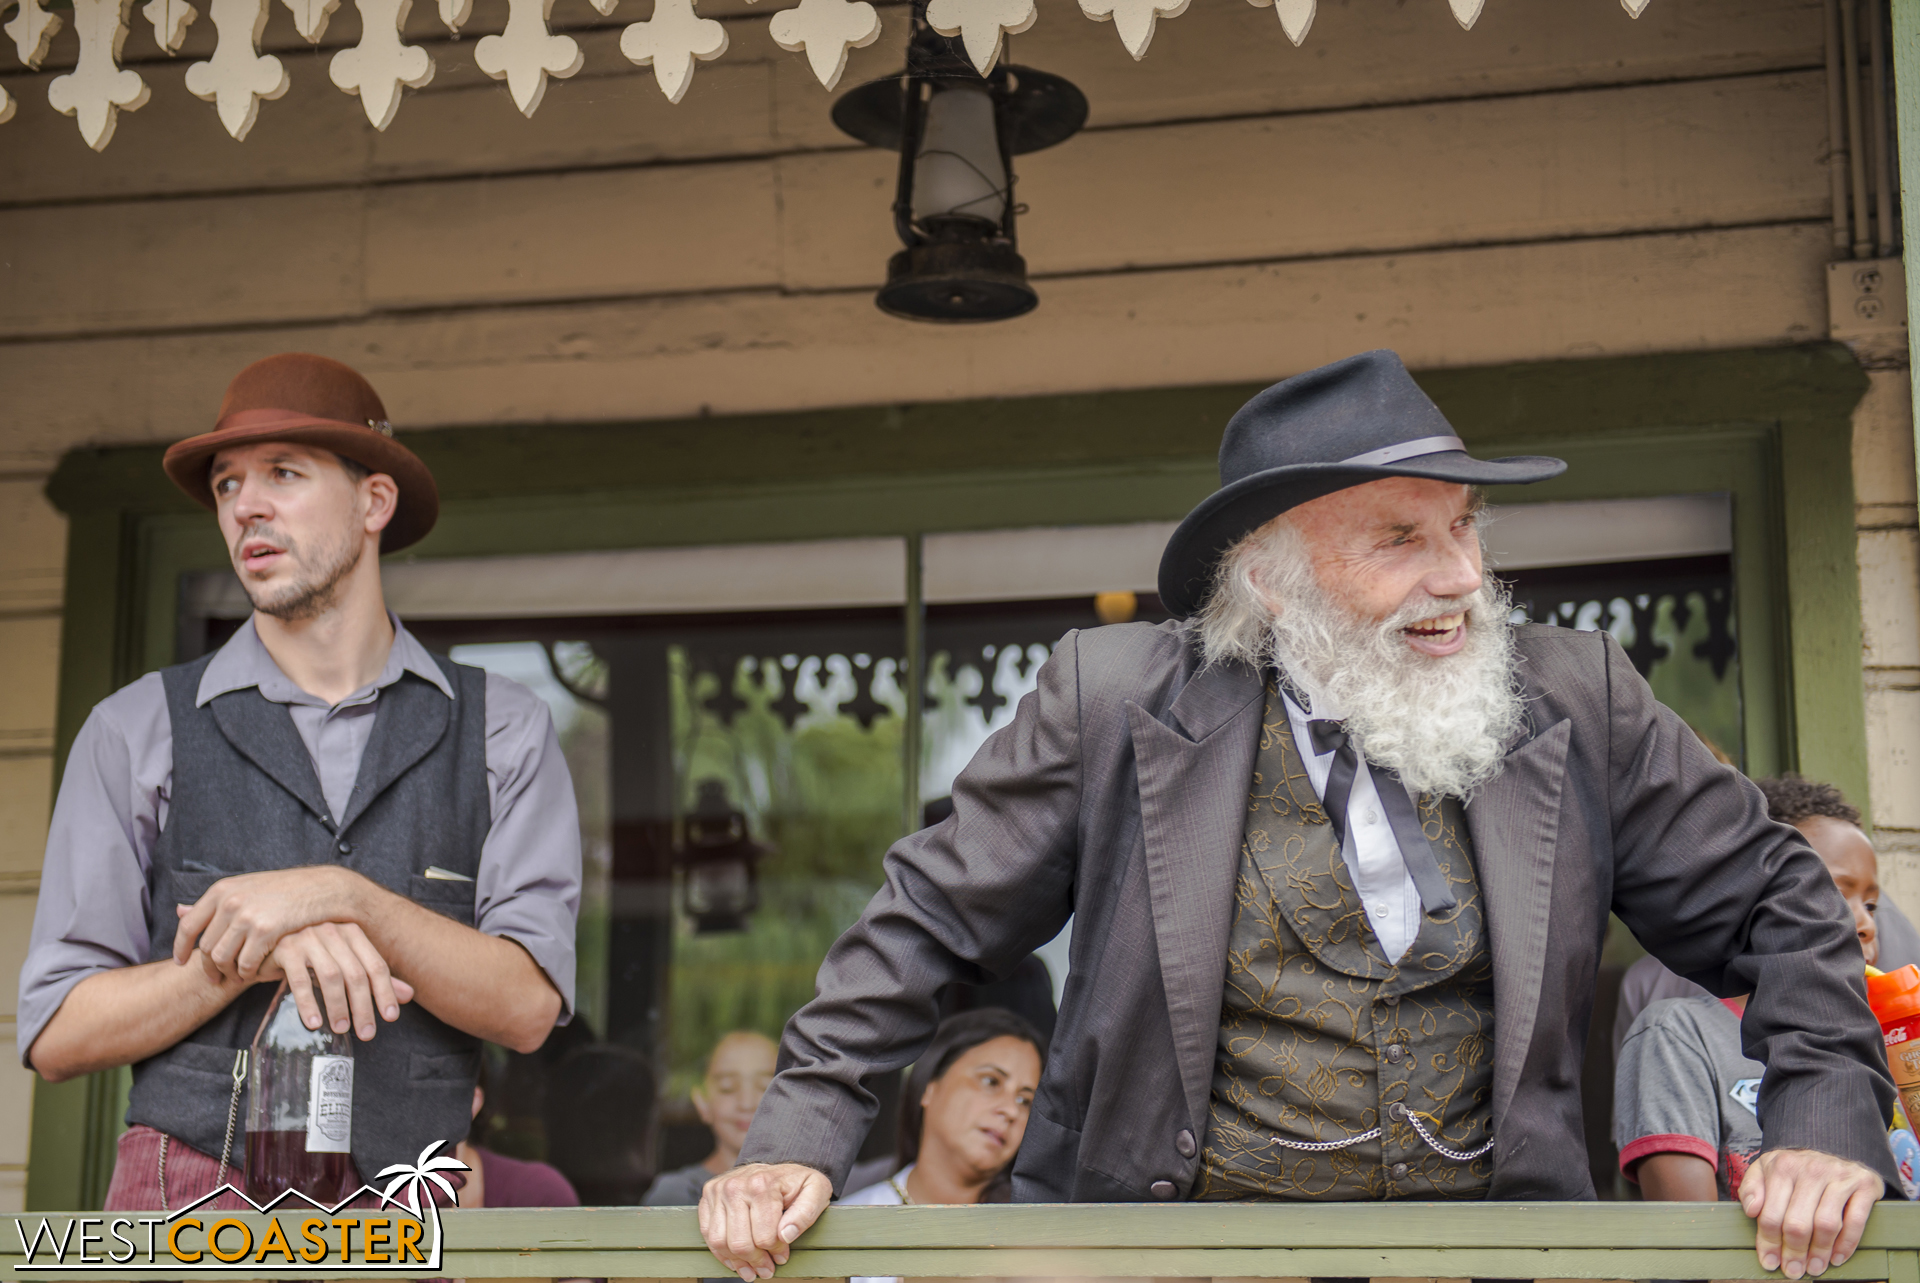 Kenny Storm and Judge Roy Bean look on to make sure voting is being conducted fairly.